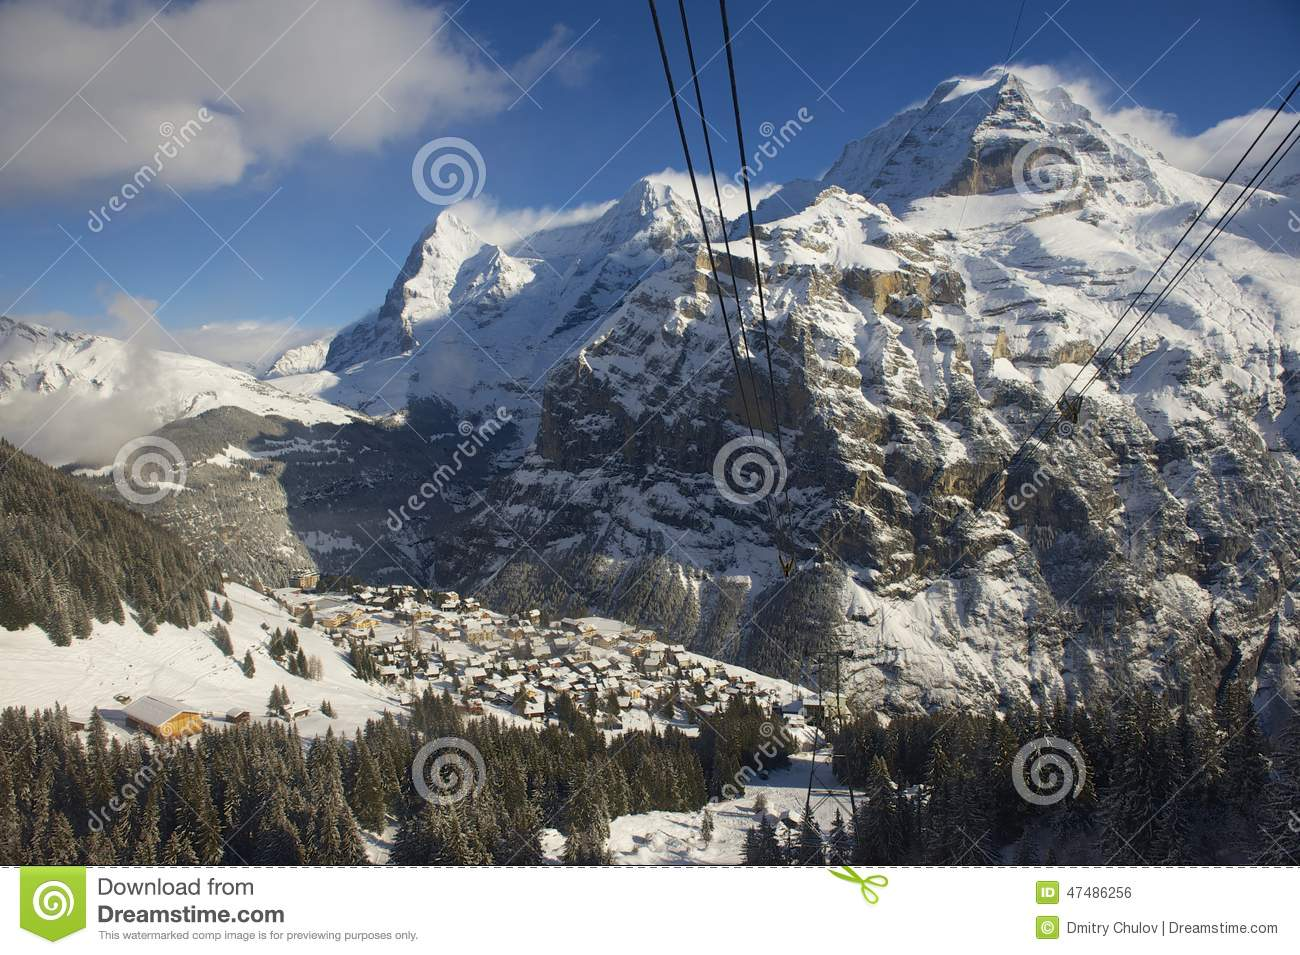 Schilthorn Mountain clipart #7, Download drawings